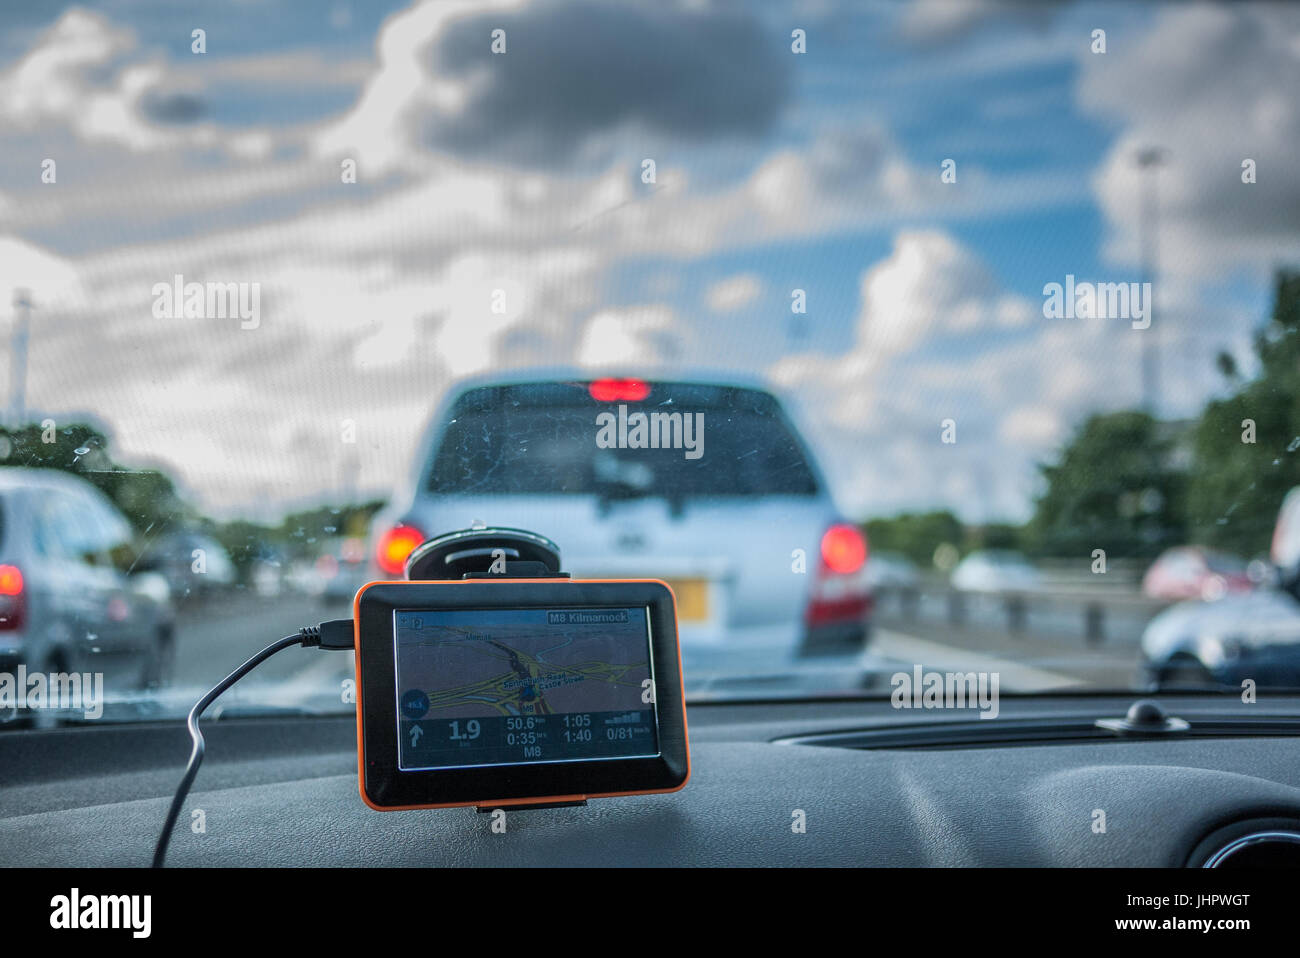 GPS navigation by car in a traffig jam, Scotland - Stock Image